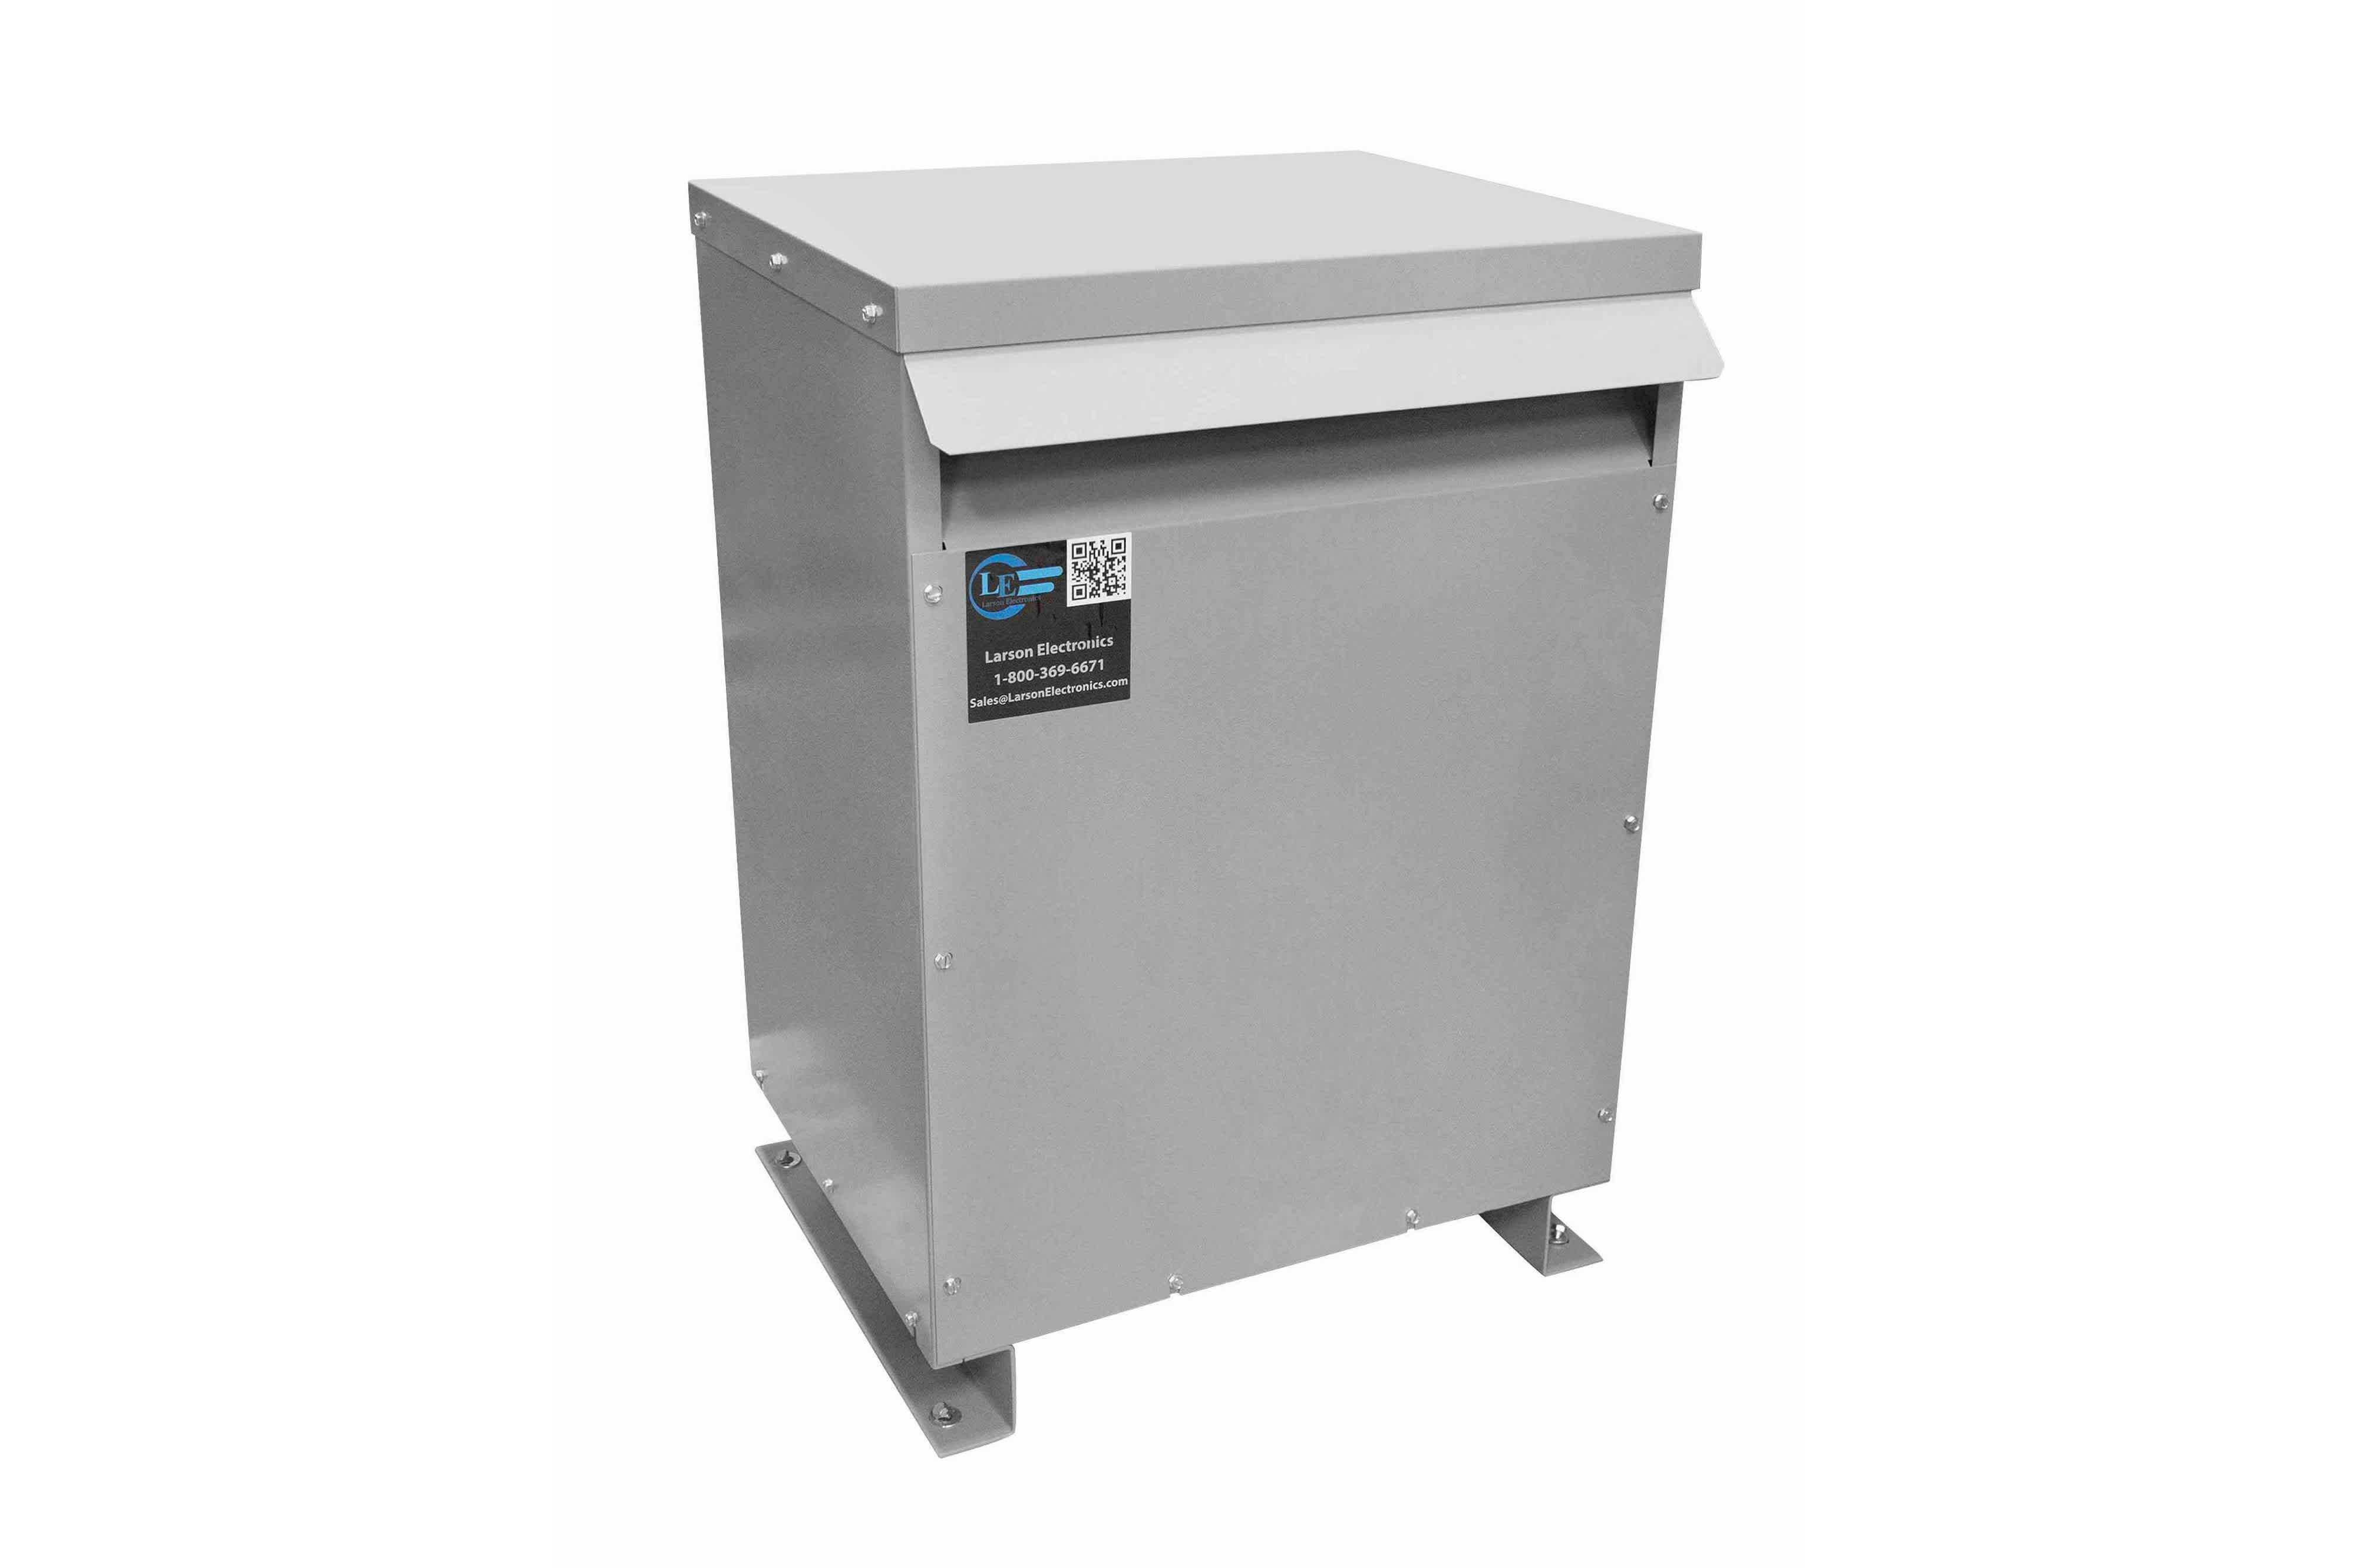 20 kVA 3PH Isolation Transformer, 600V Delta Primary, 400V Delta Secondary, N3R, Ventilated, 60 Hz